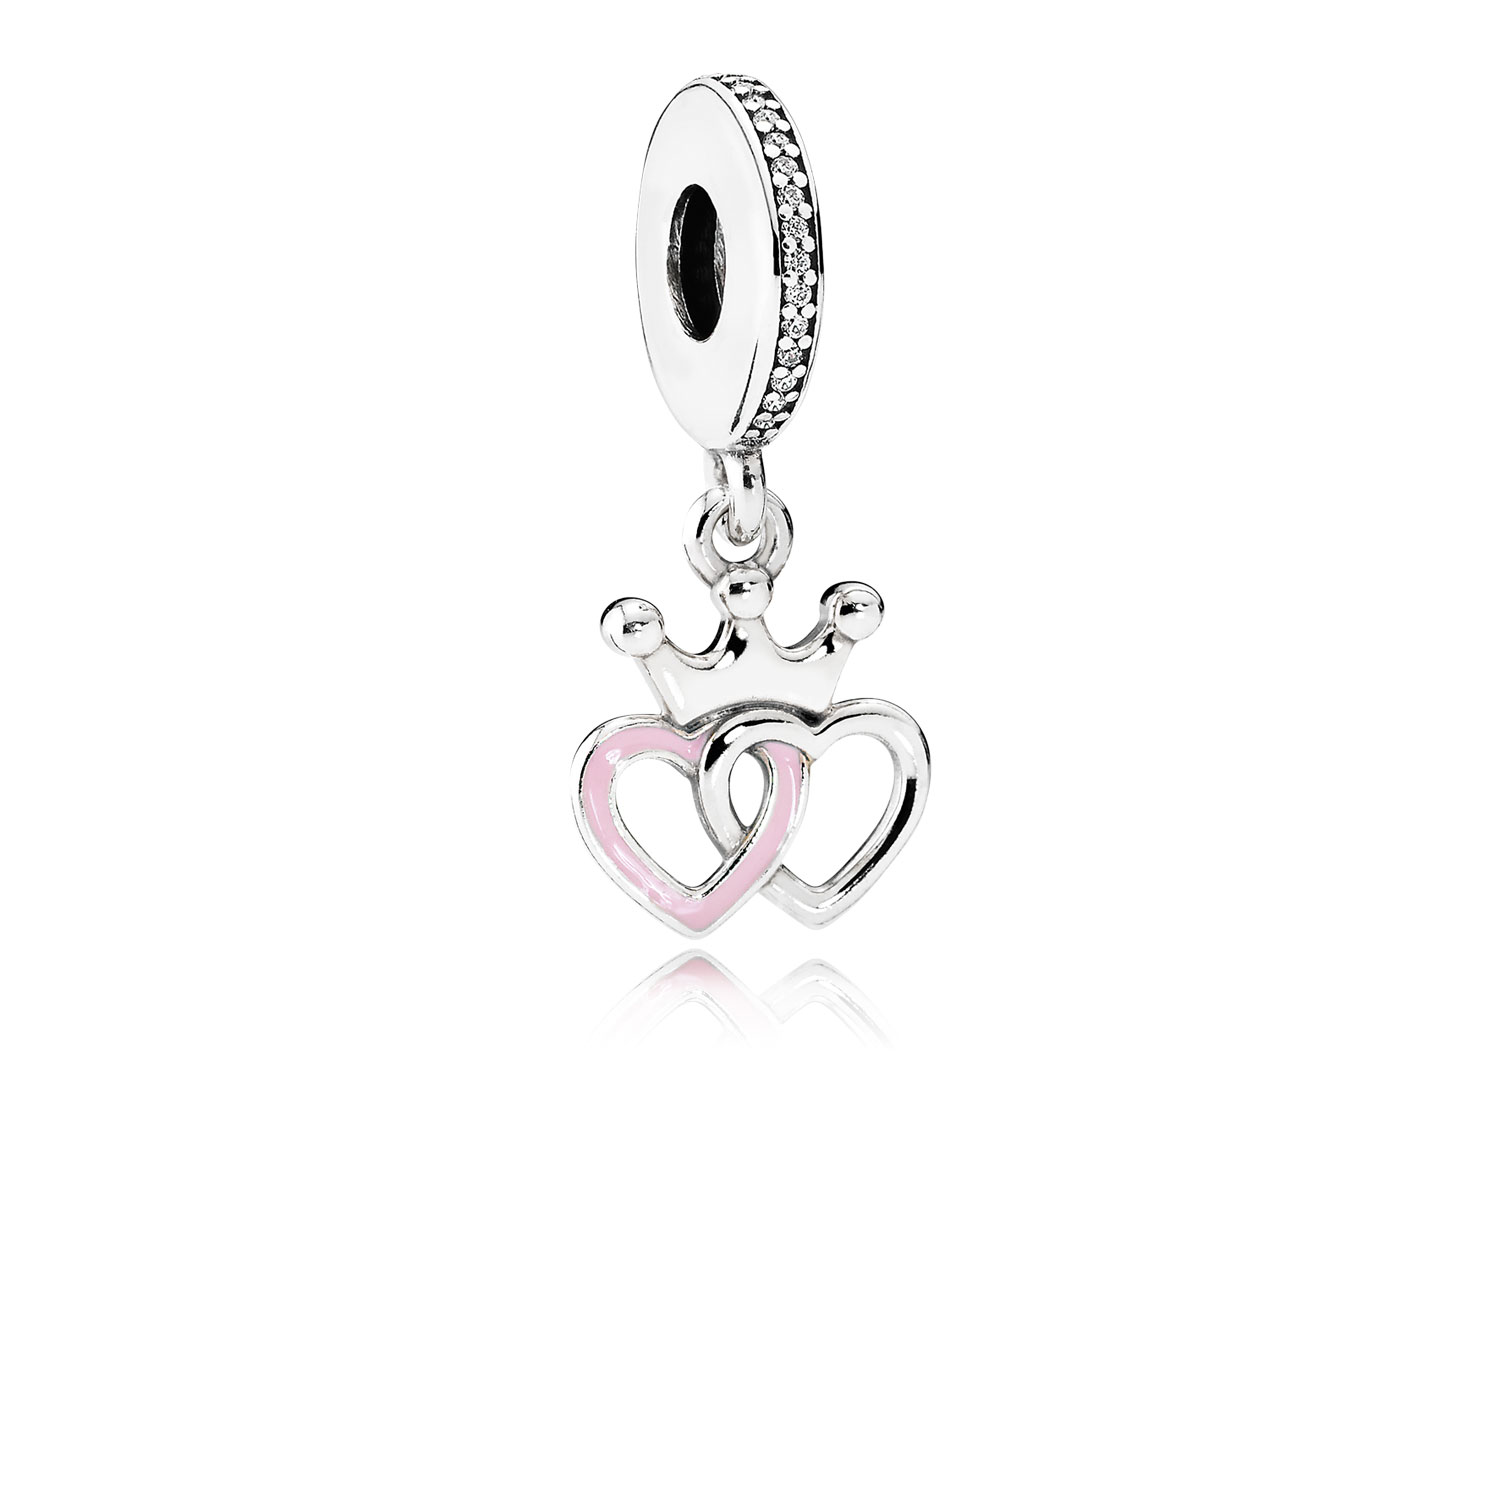 Crowned Hearts Dangle Charm, Orchid Pink Enamel & Clear CZ